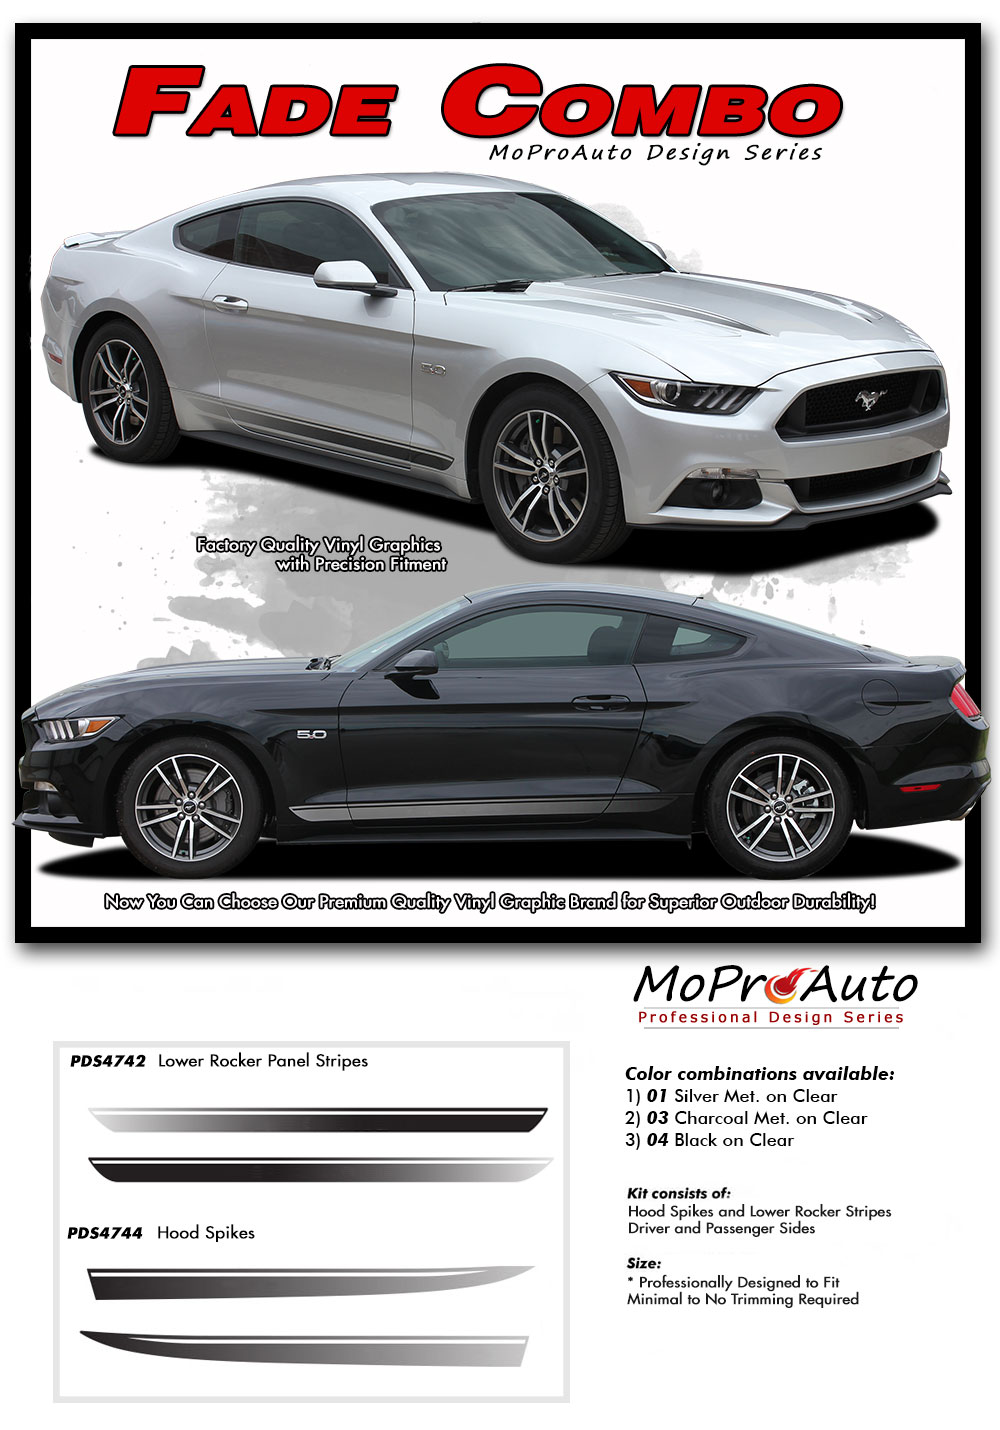 Ford Mustang Fade Rally Faded Rocker Hood Stripes Ebony Racing Striping Silver Vinyl Graphics Decals